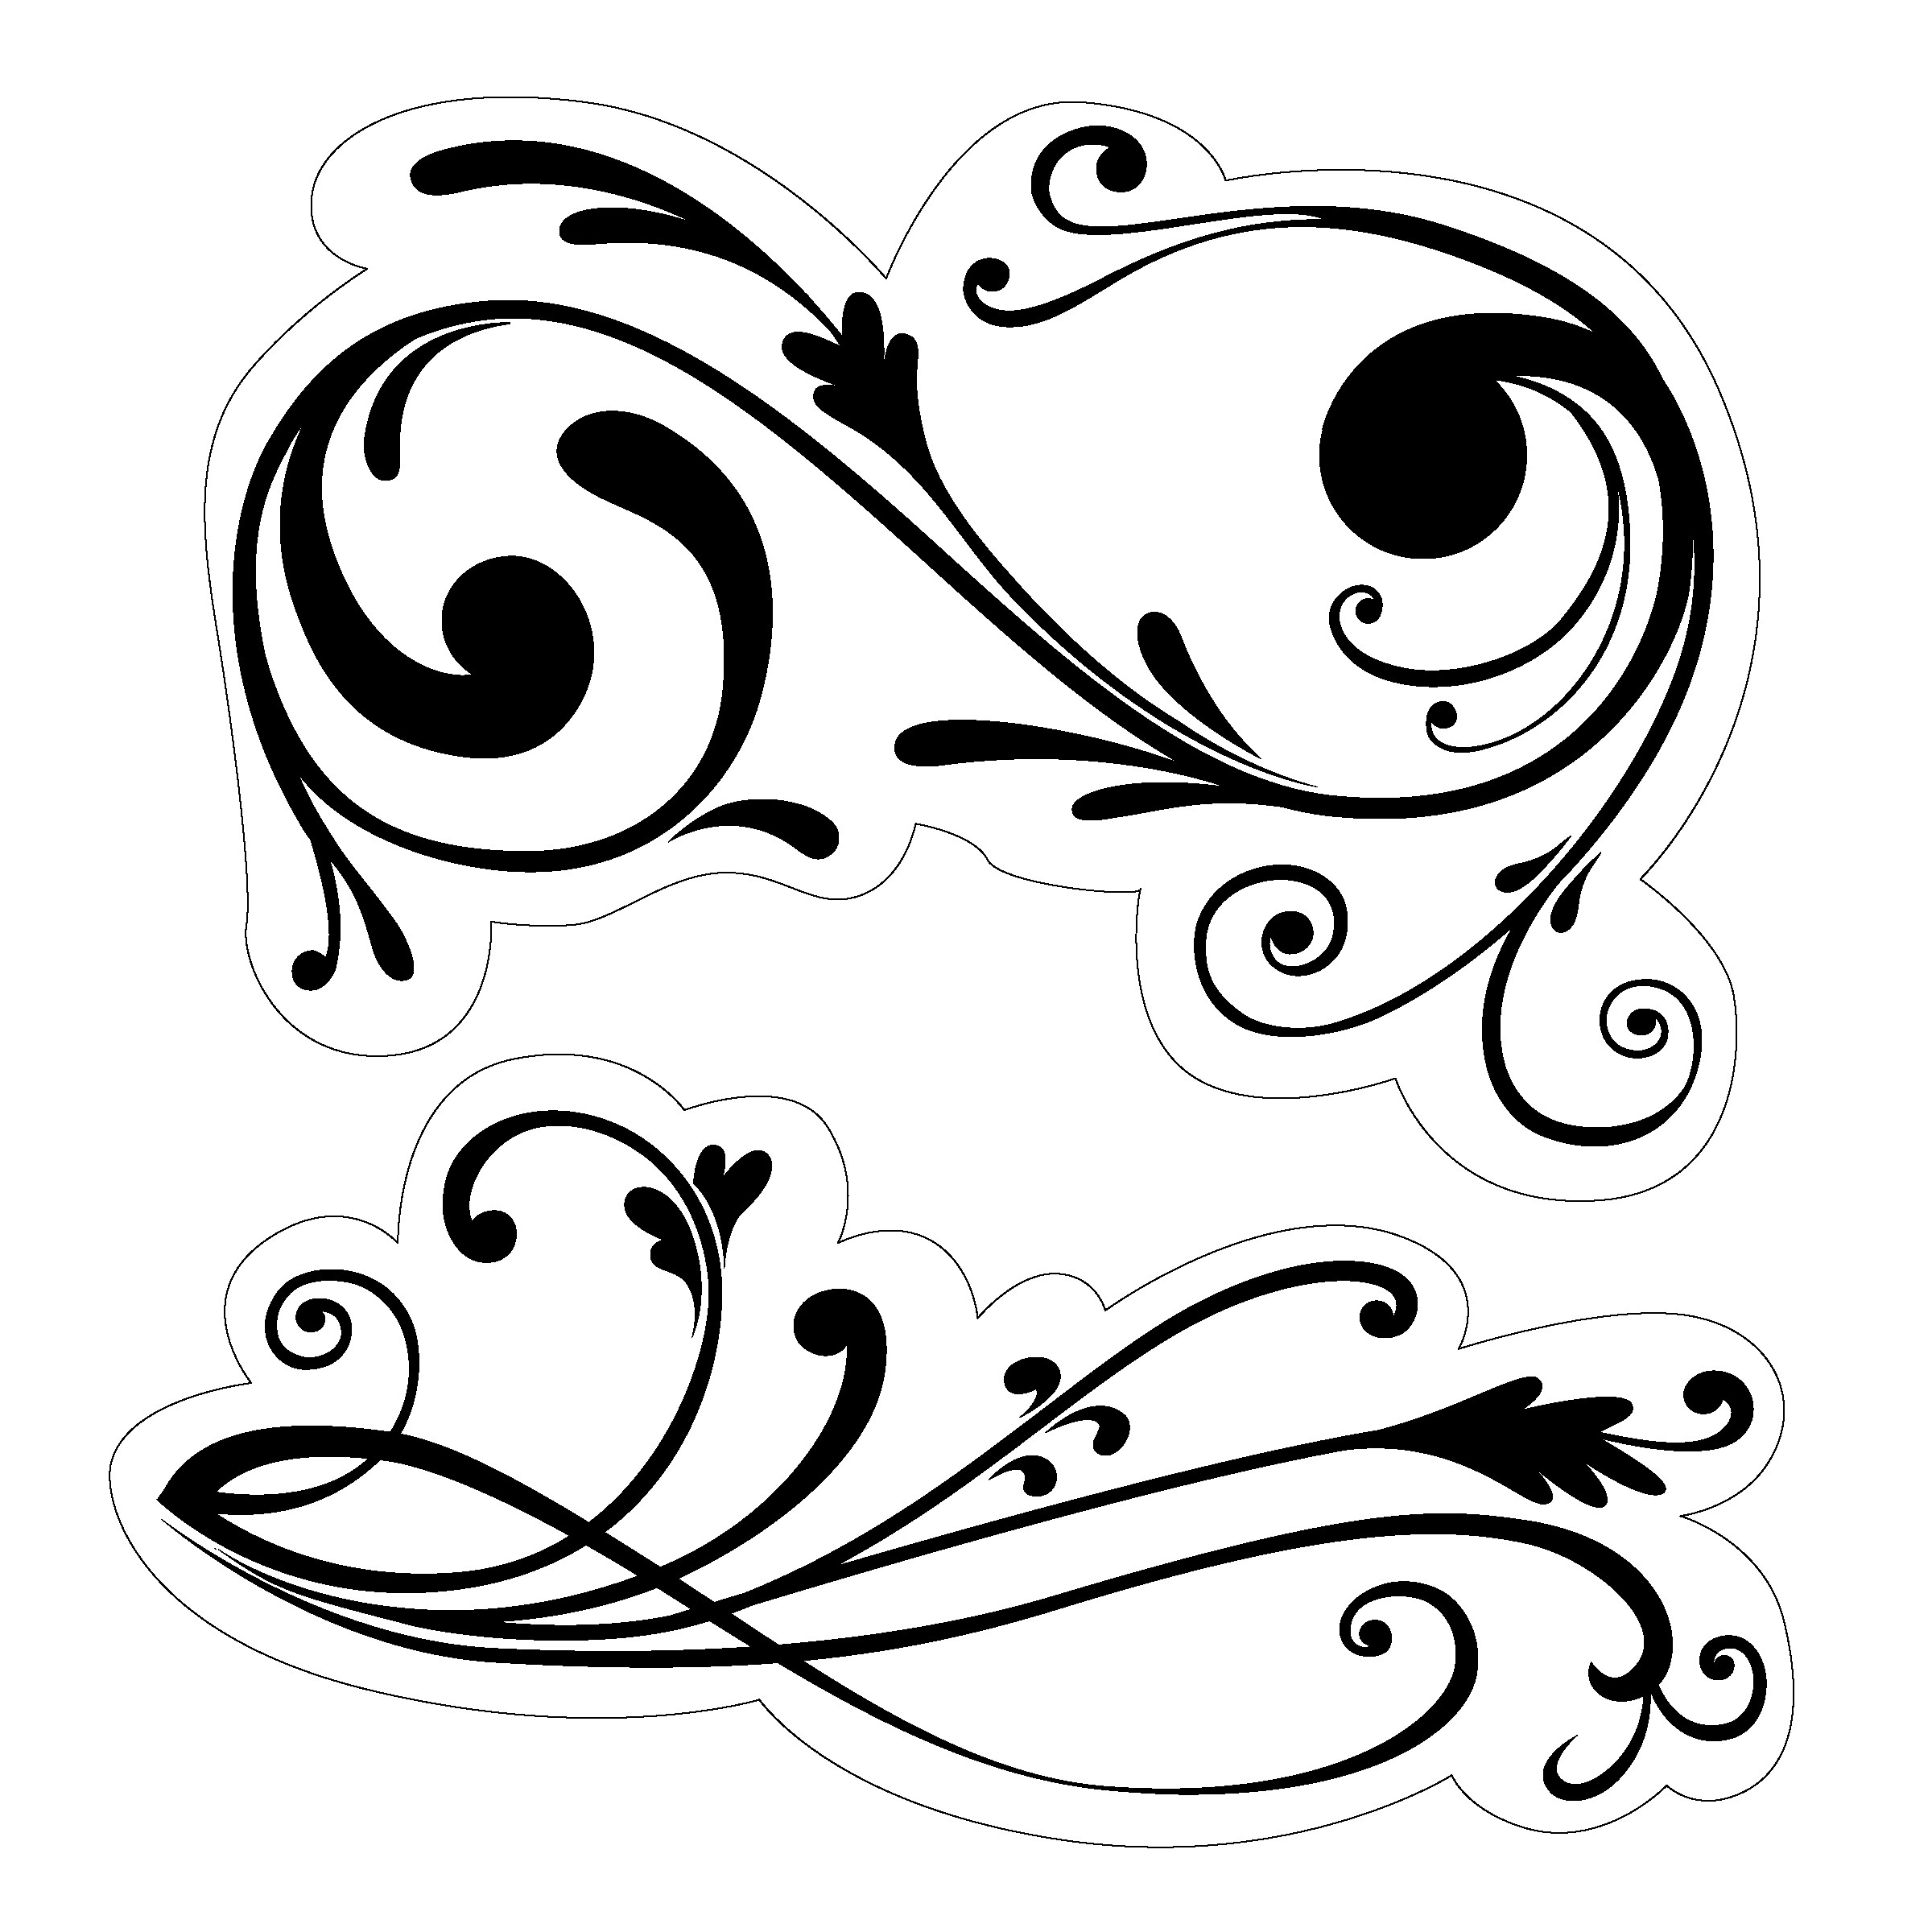 Free Black And White Filigree, Download Free Clip Art, Free.